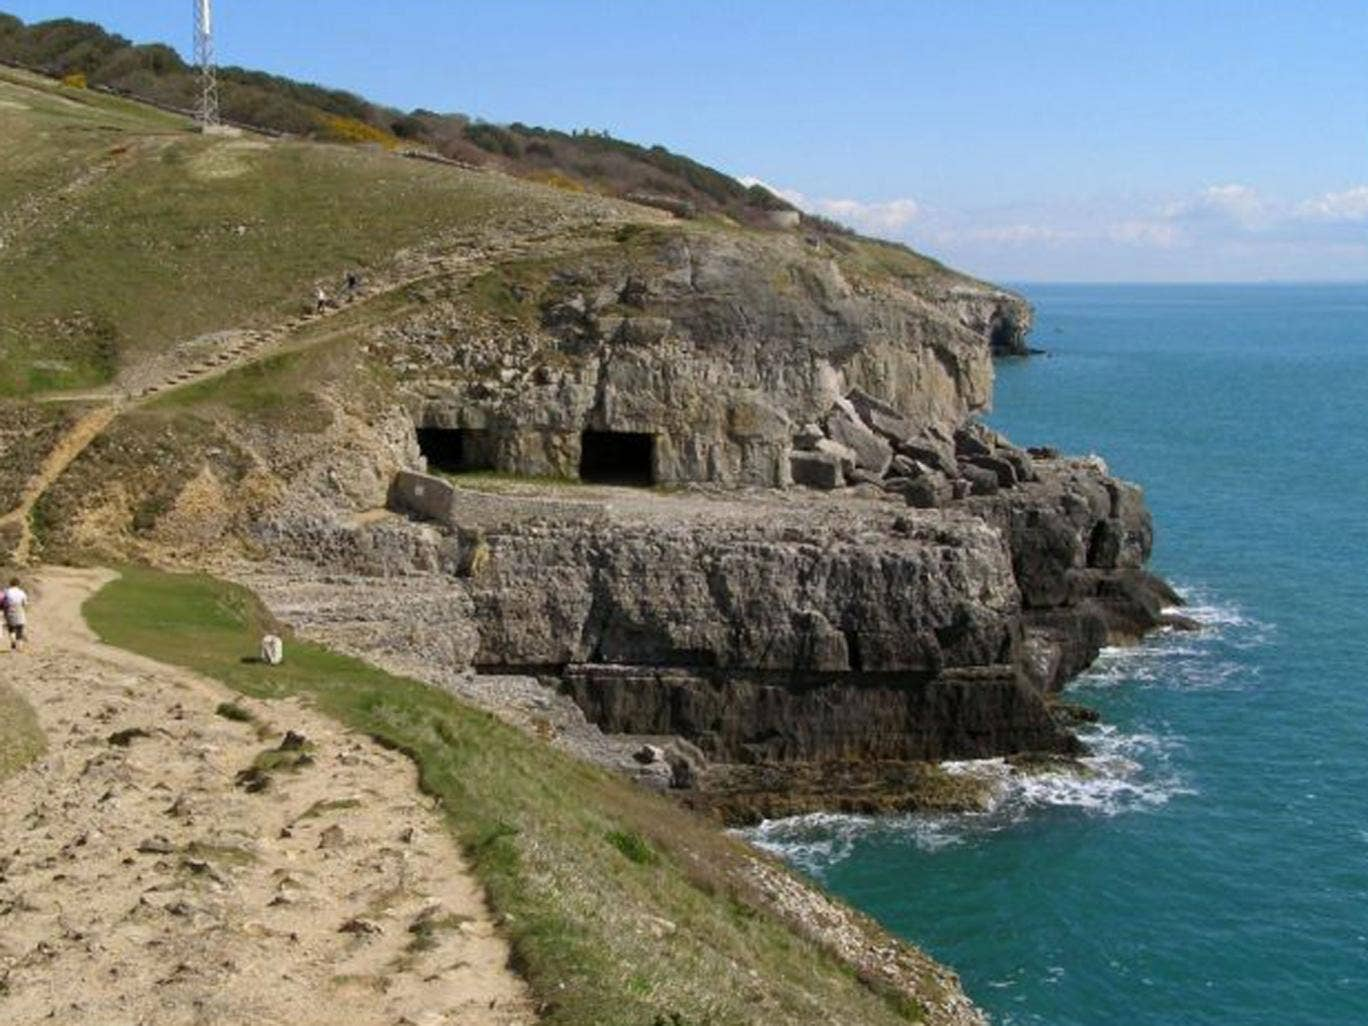 The Tilly Whim caves in Dorset